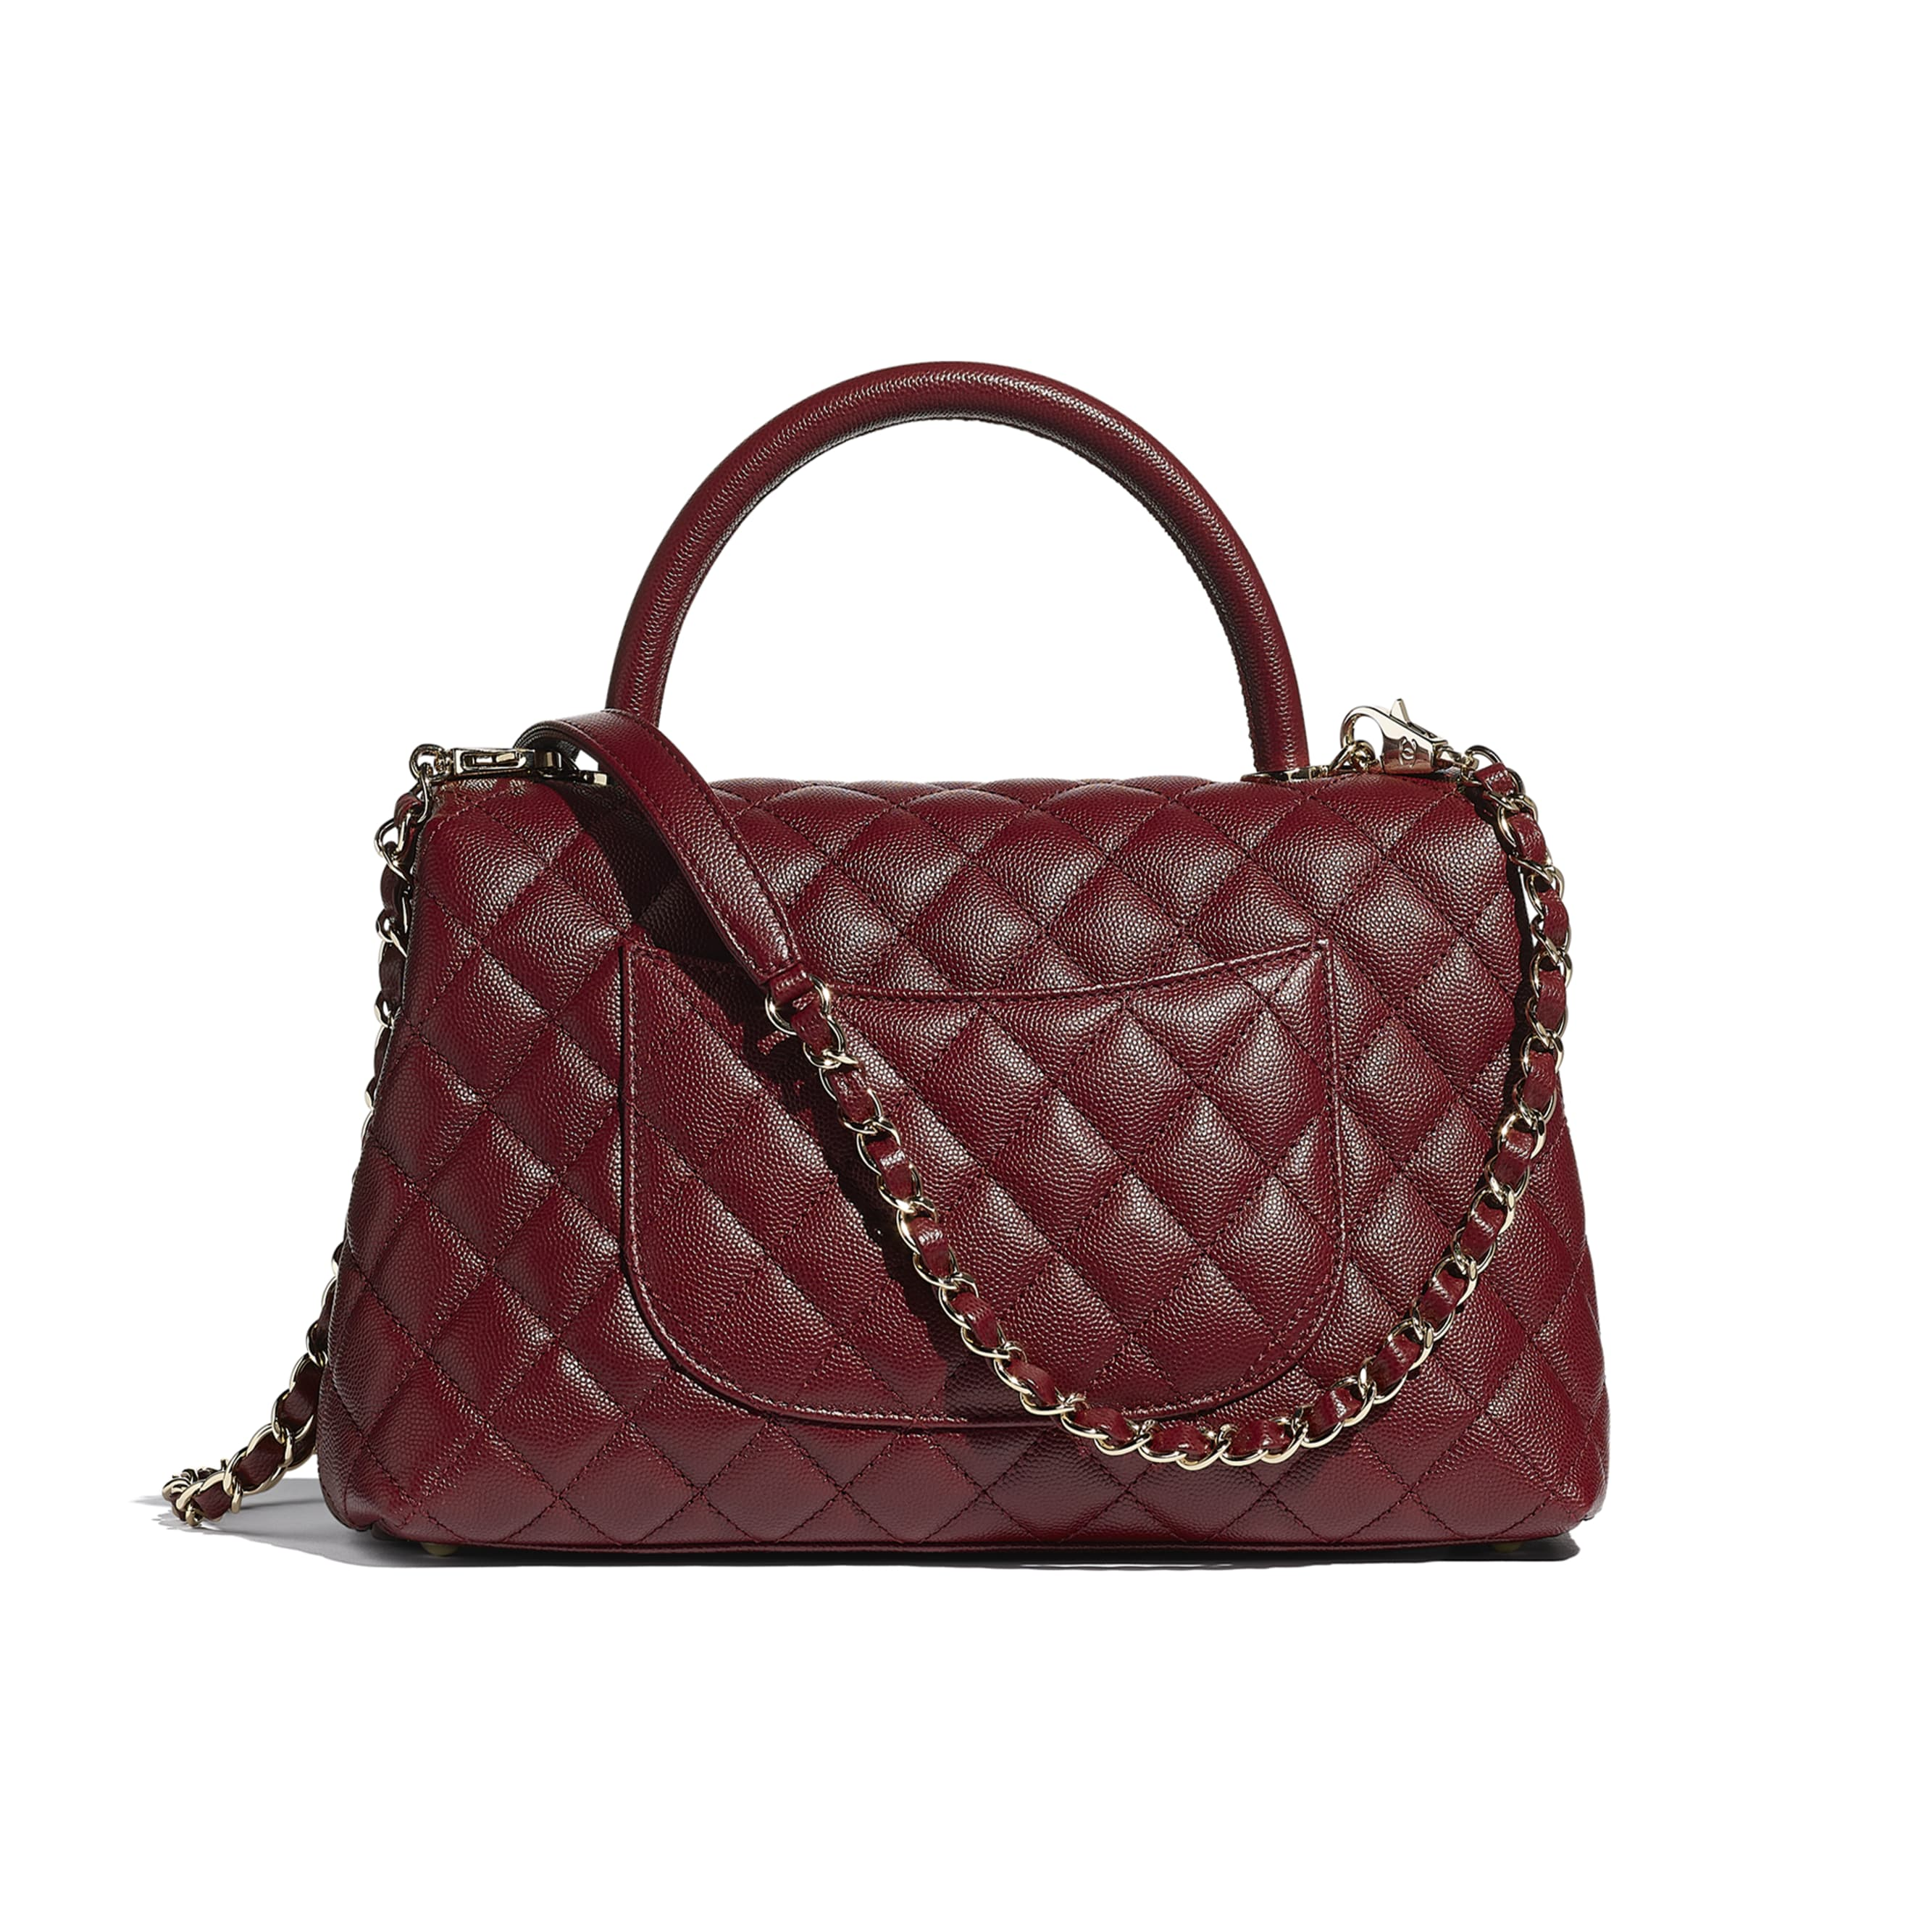 Flap Bag With Top Handle - Burgundy - Grained Calfskin & Gold-Tone Metal - CHANEL - Alternative view - see standard sized version